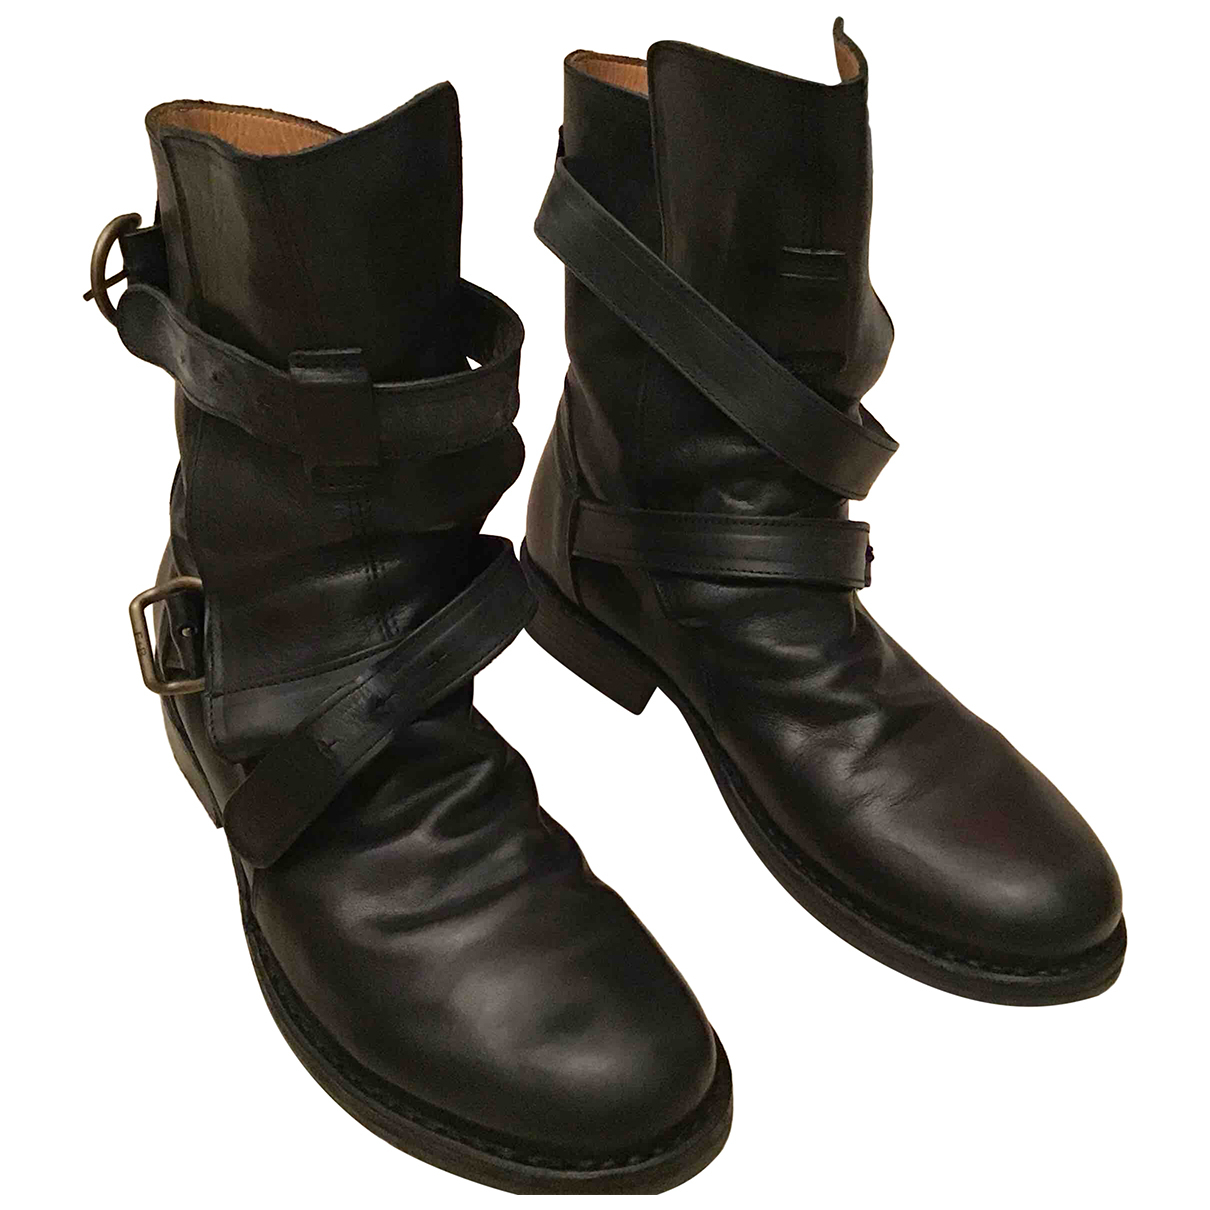 Fiorentini+baker N Black Leather Ankle boots for Women 38 EU